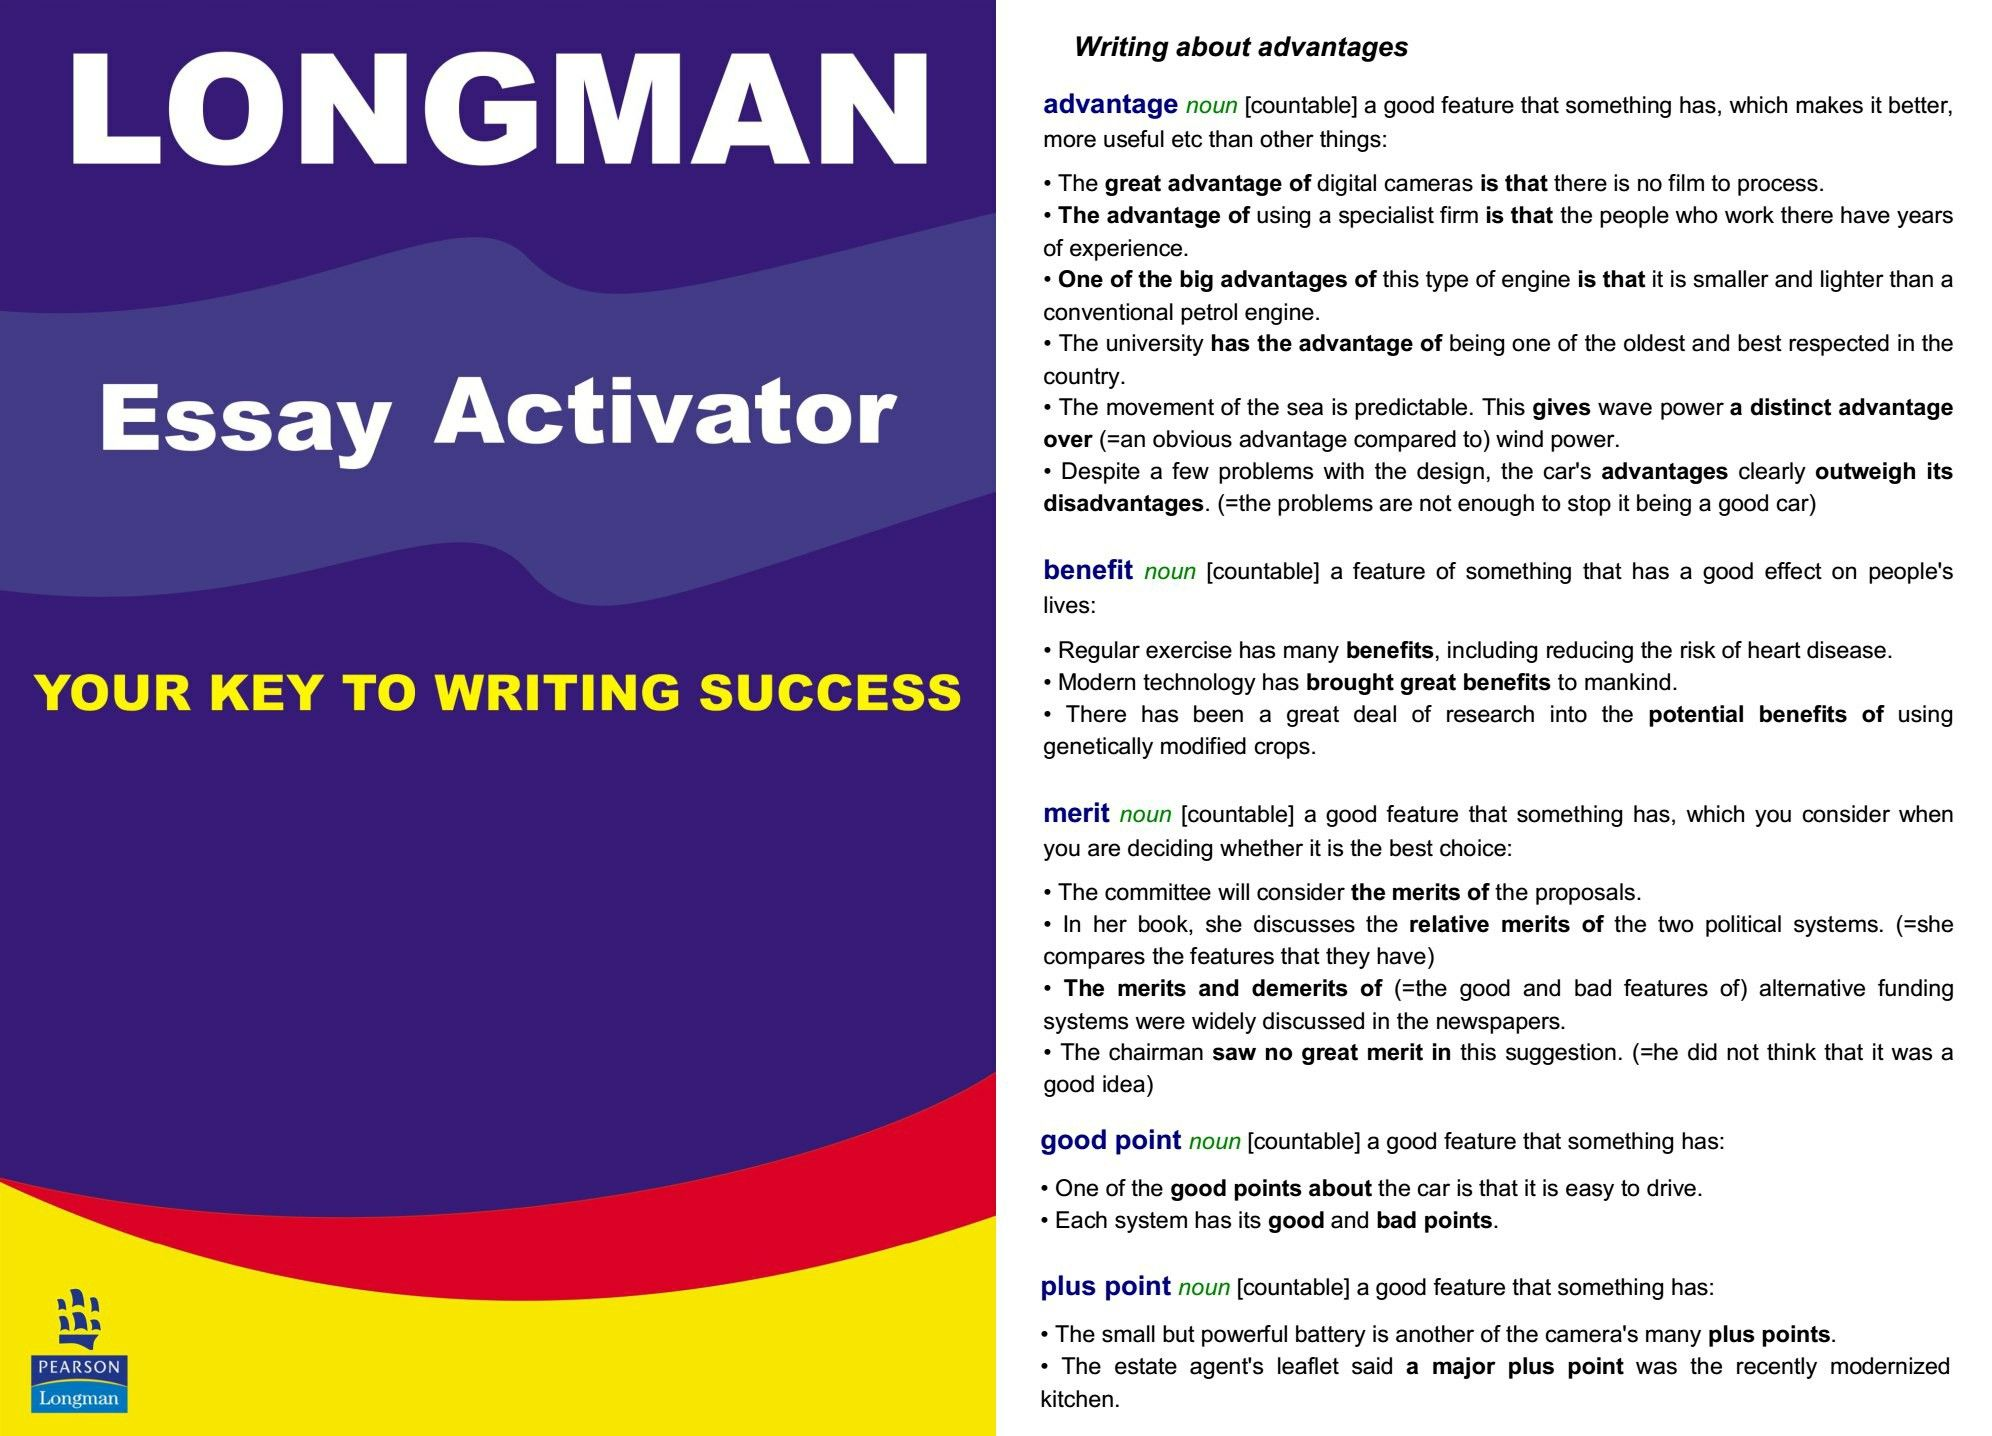 english longman essay The longman writer rhetoric and reader fifth edition  man composition and about usingthe longman write  what we emphasize when discussing the professional essays.